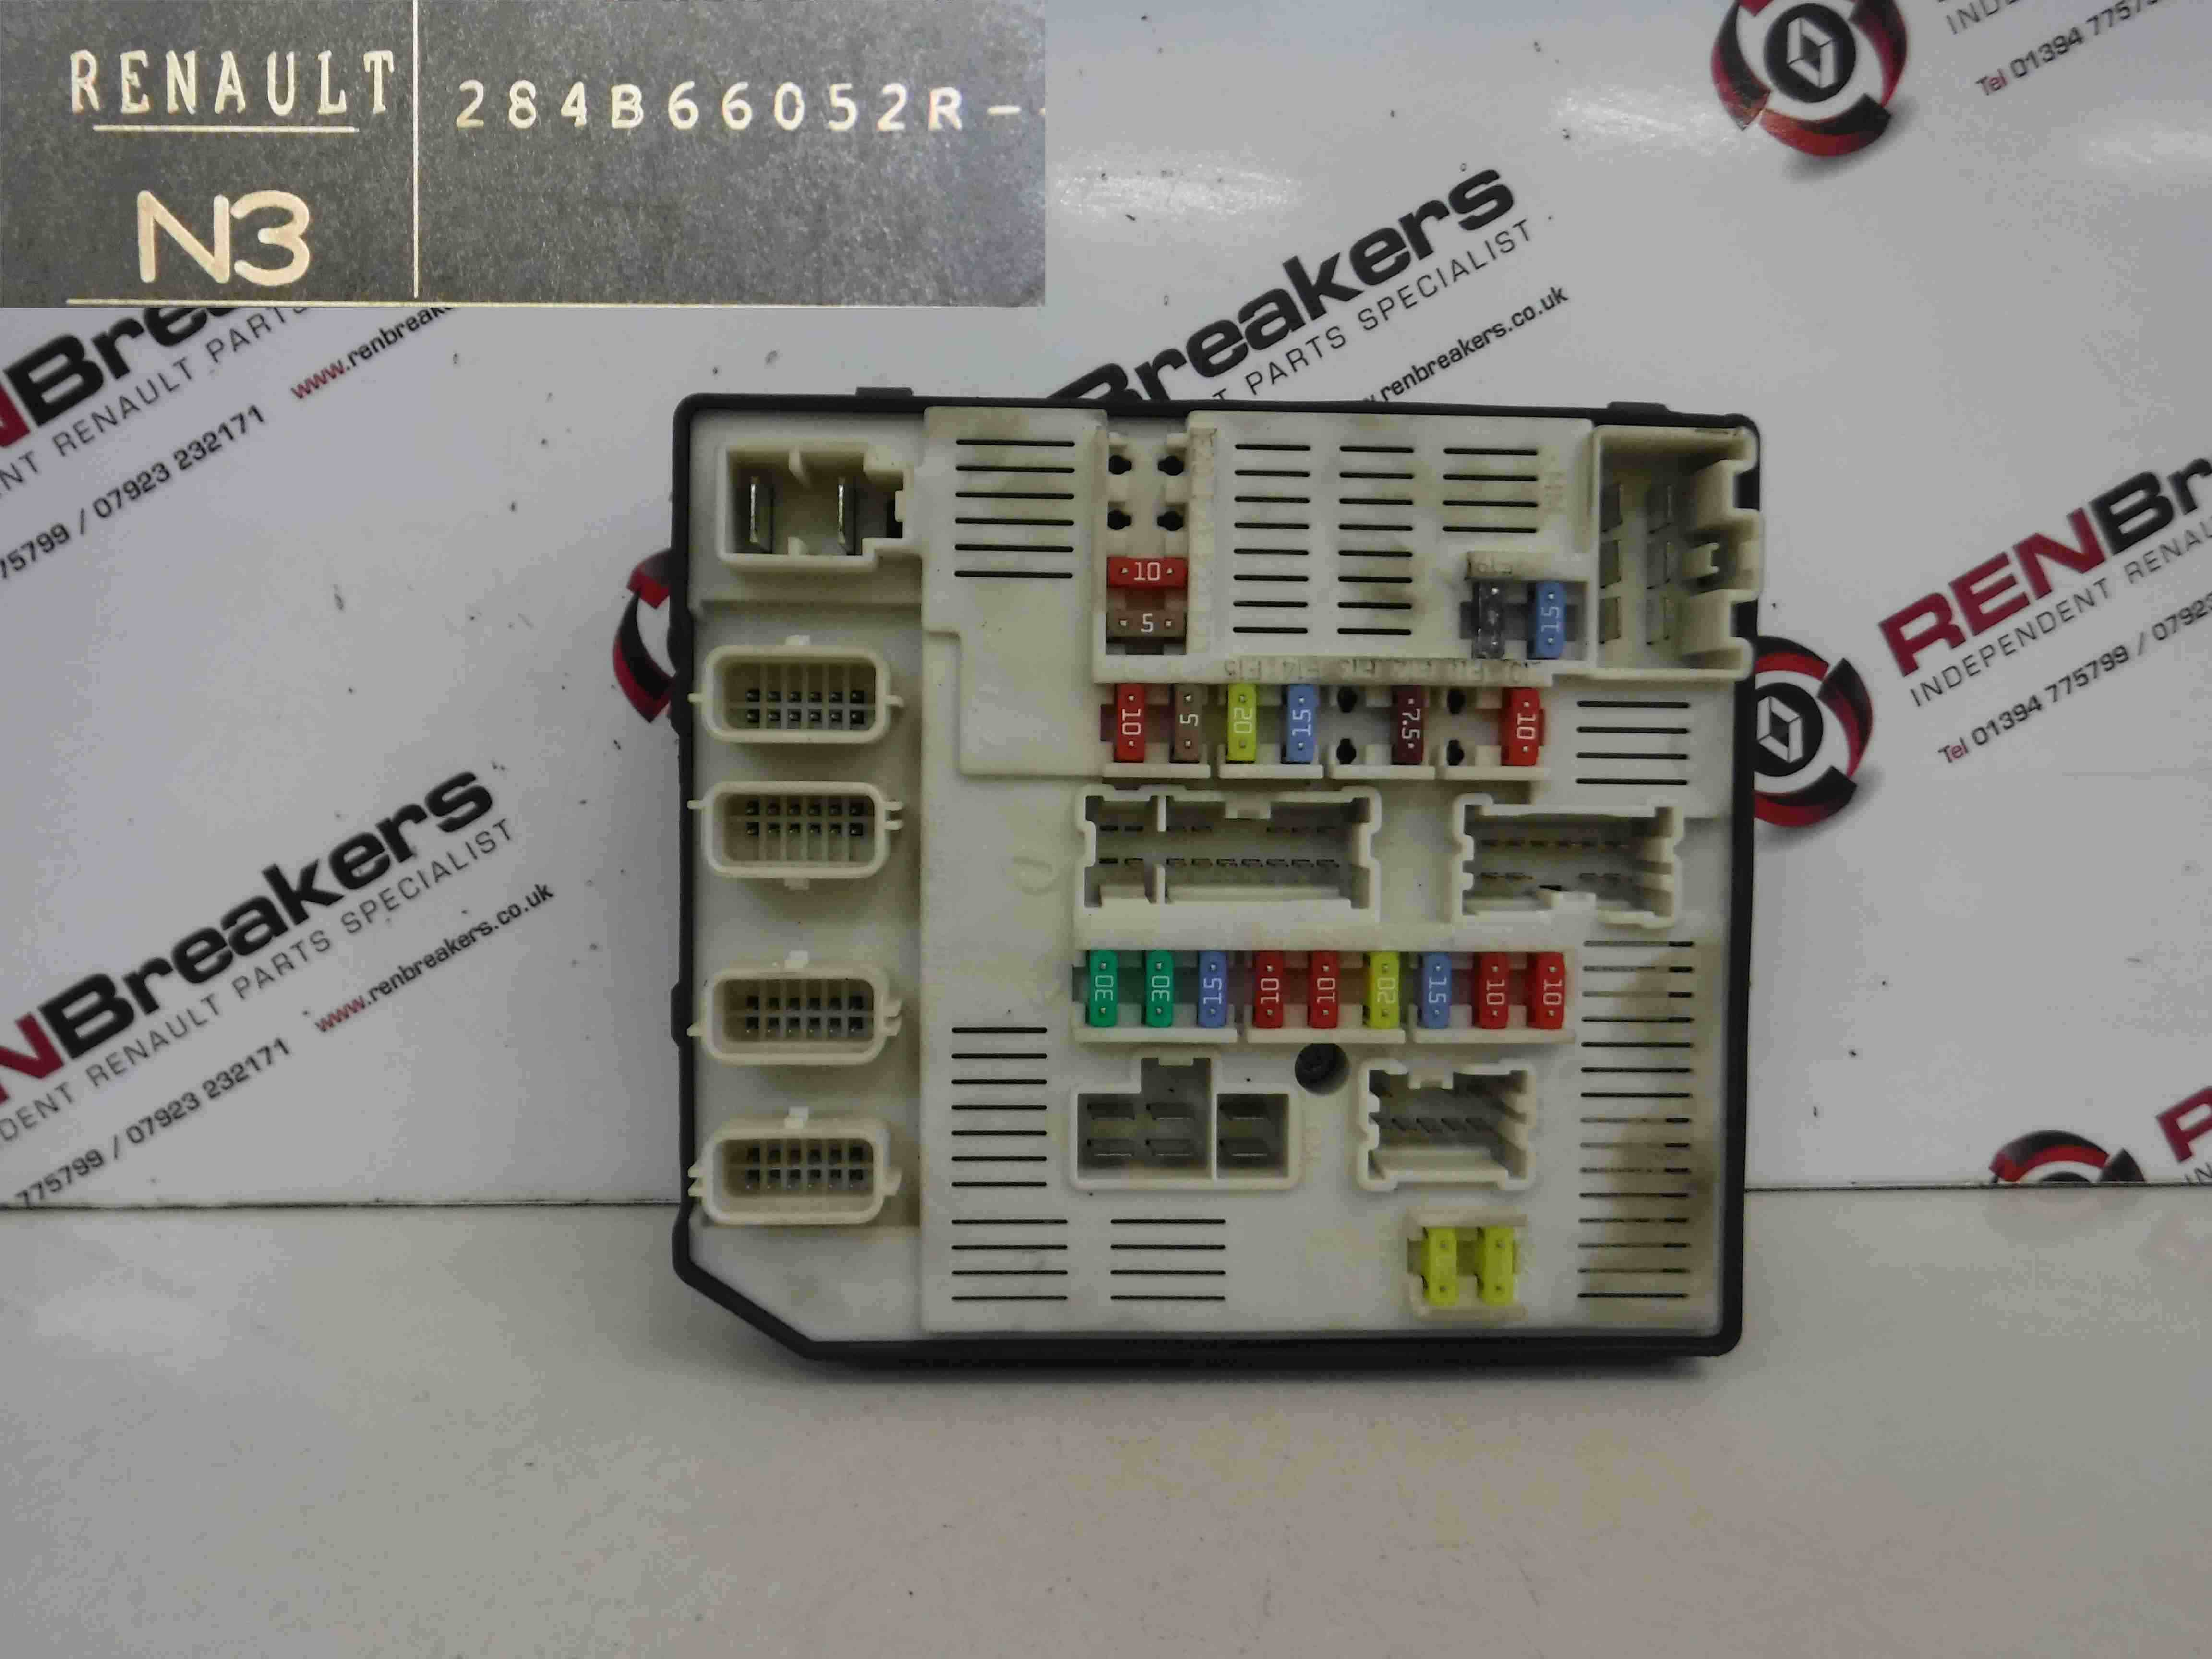 Renault megane fuse box mazda interior diagram